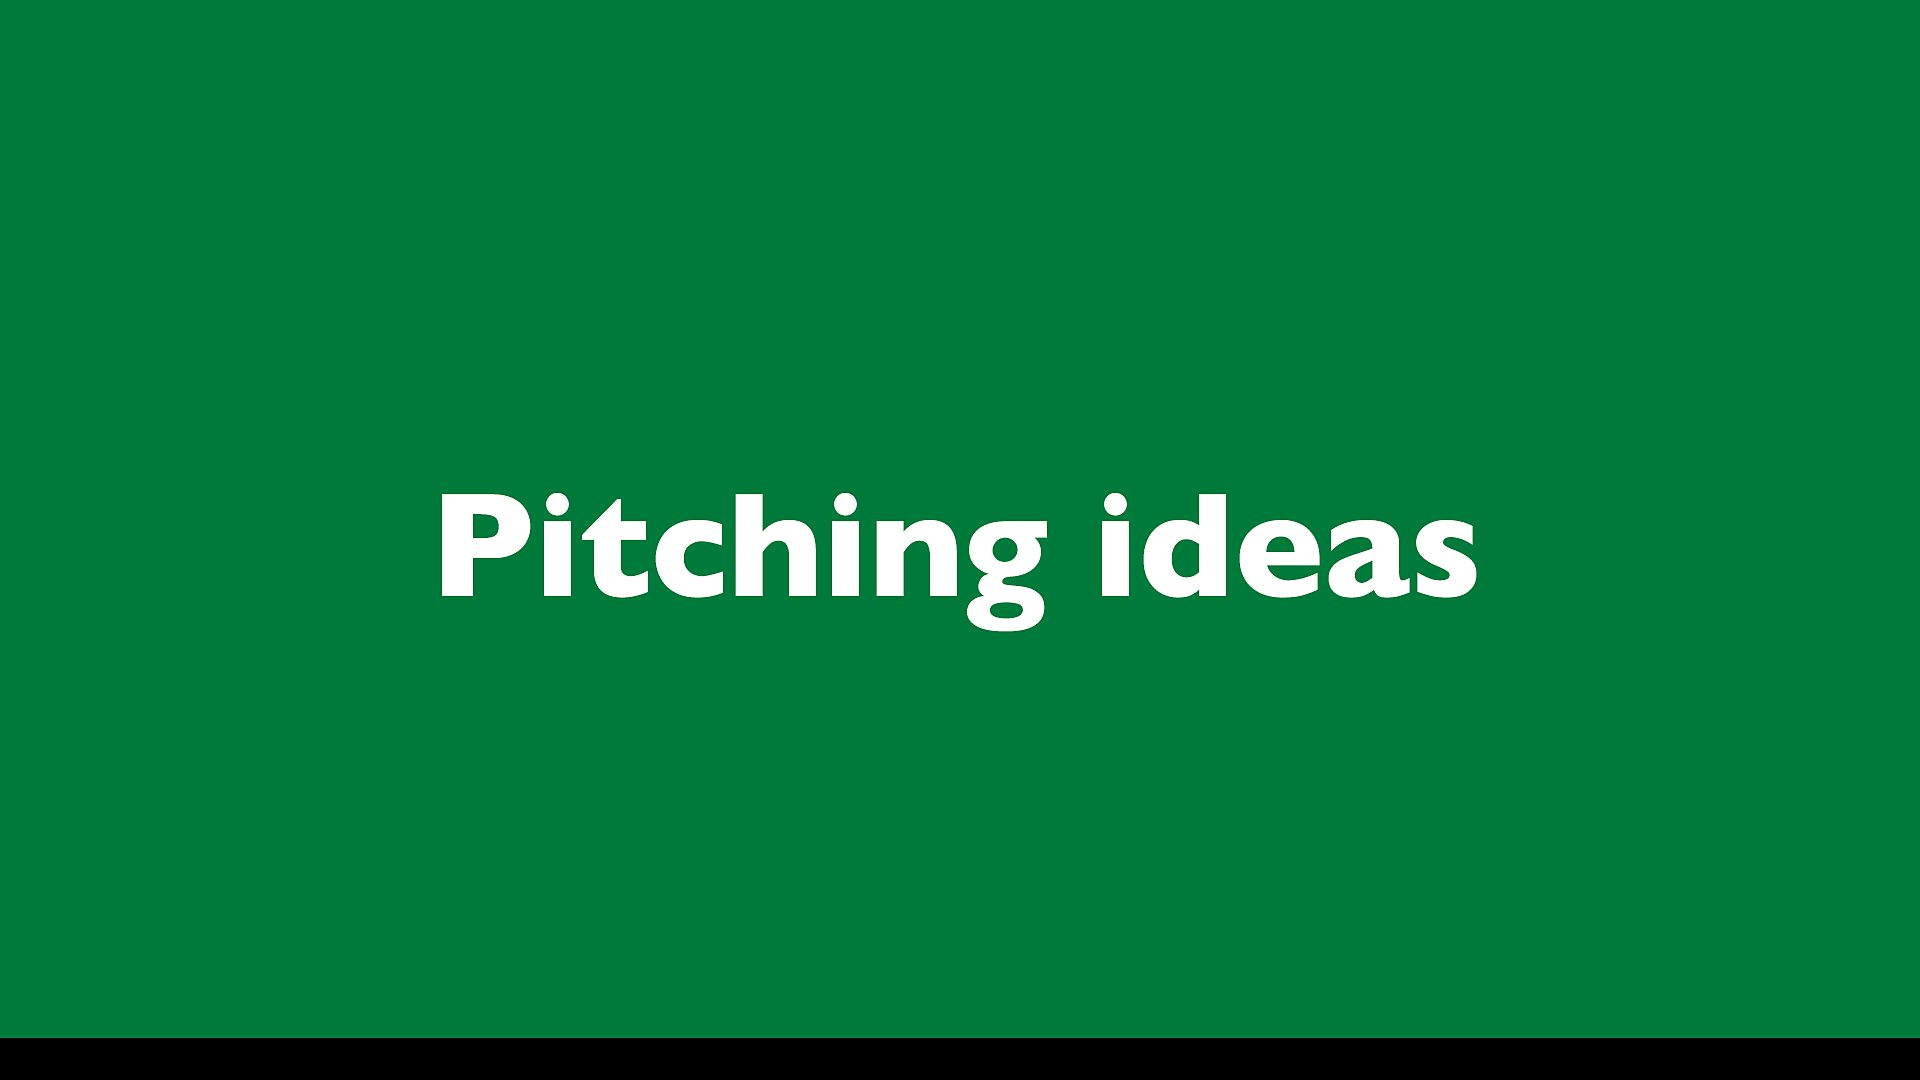 BBC Radio - Information for suppliers to Radio - Pitching ideas